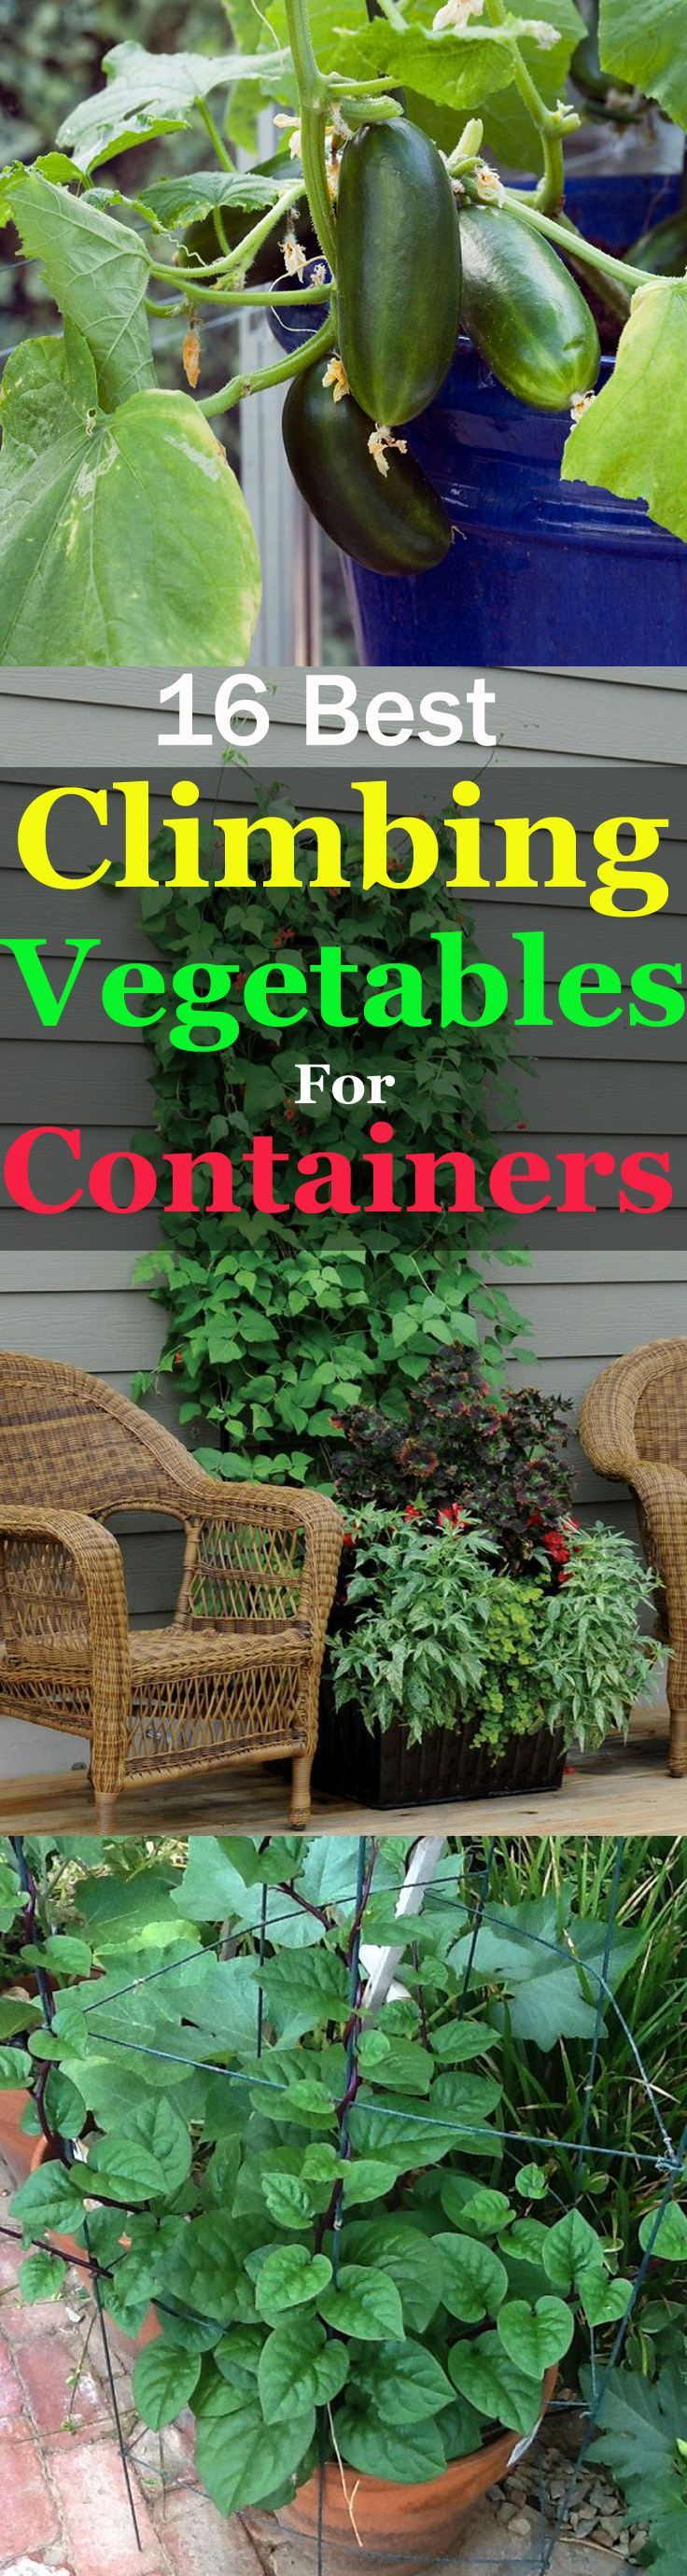 17 Best Climbing and Vining Vegetables for